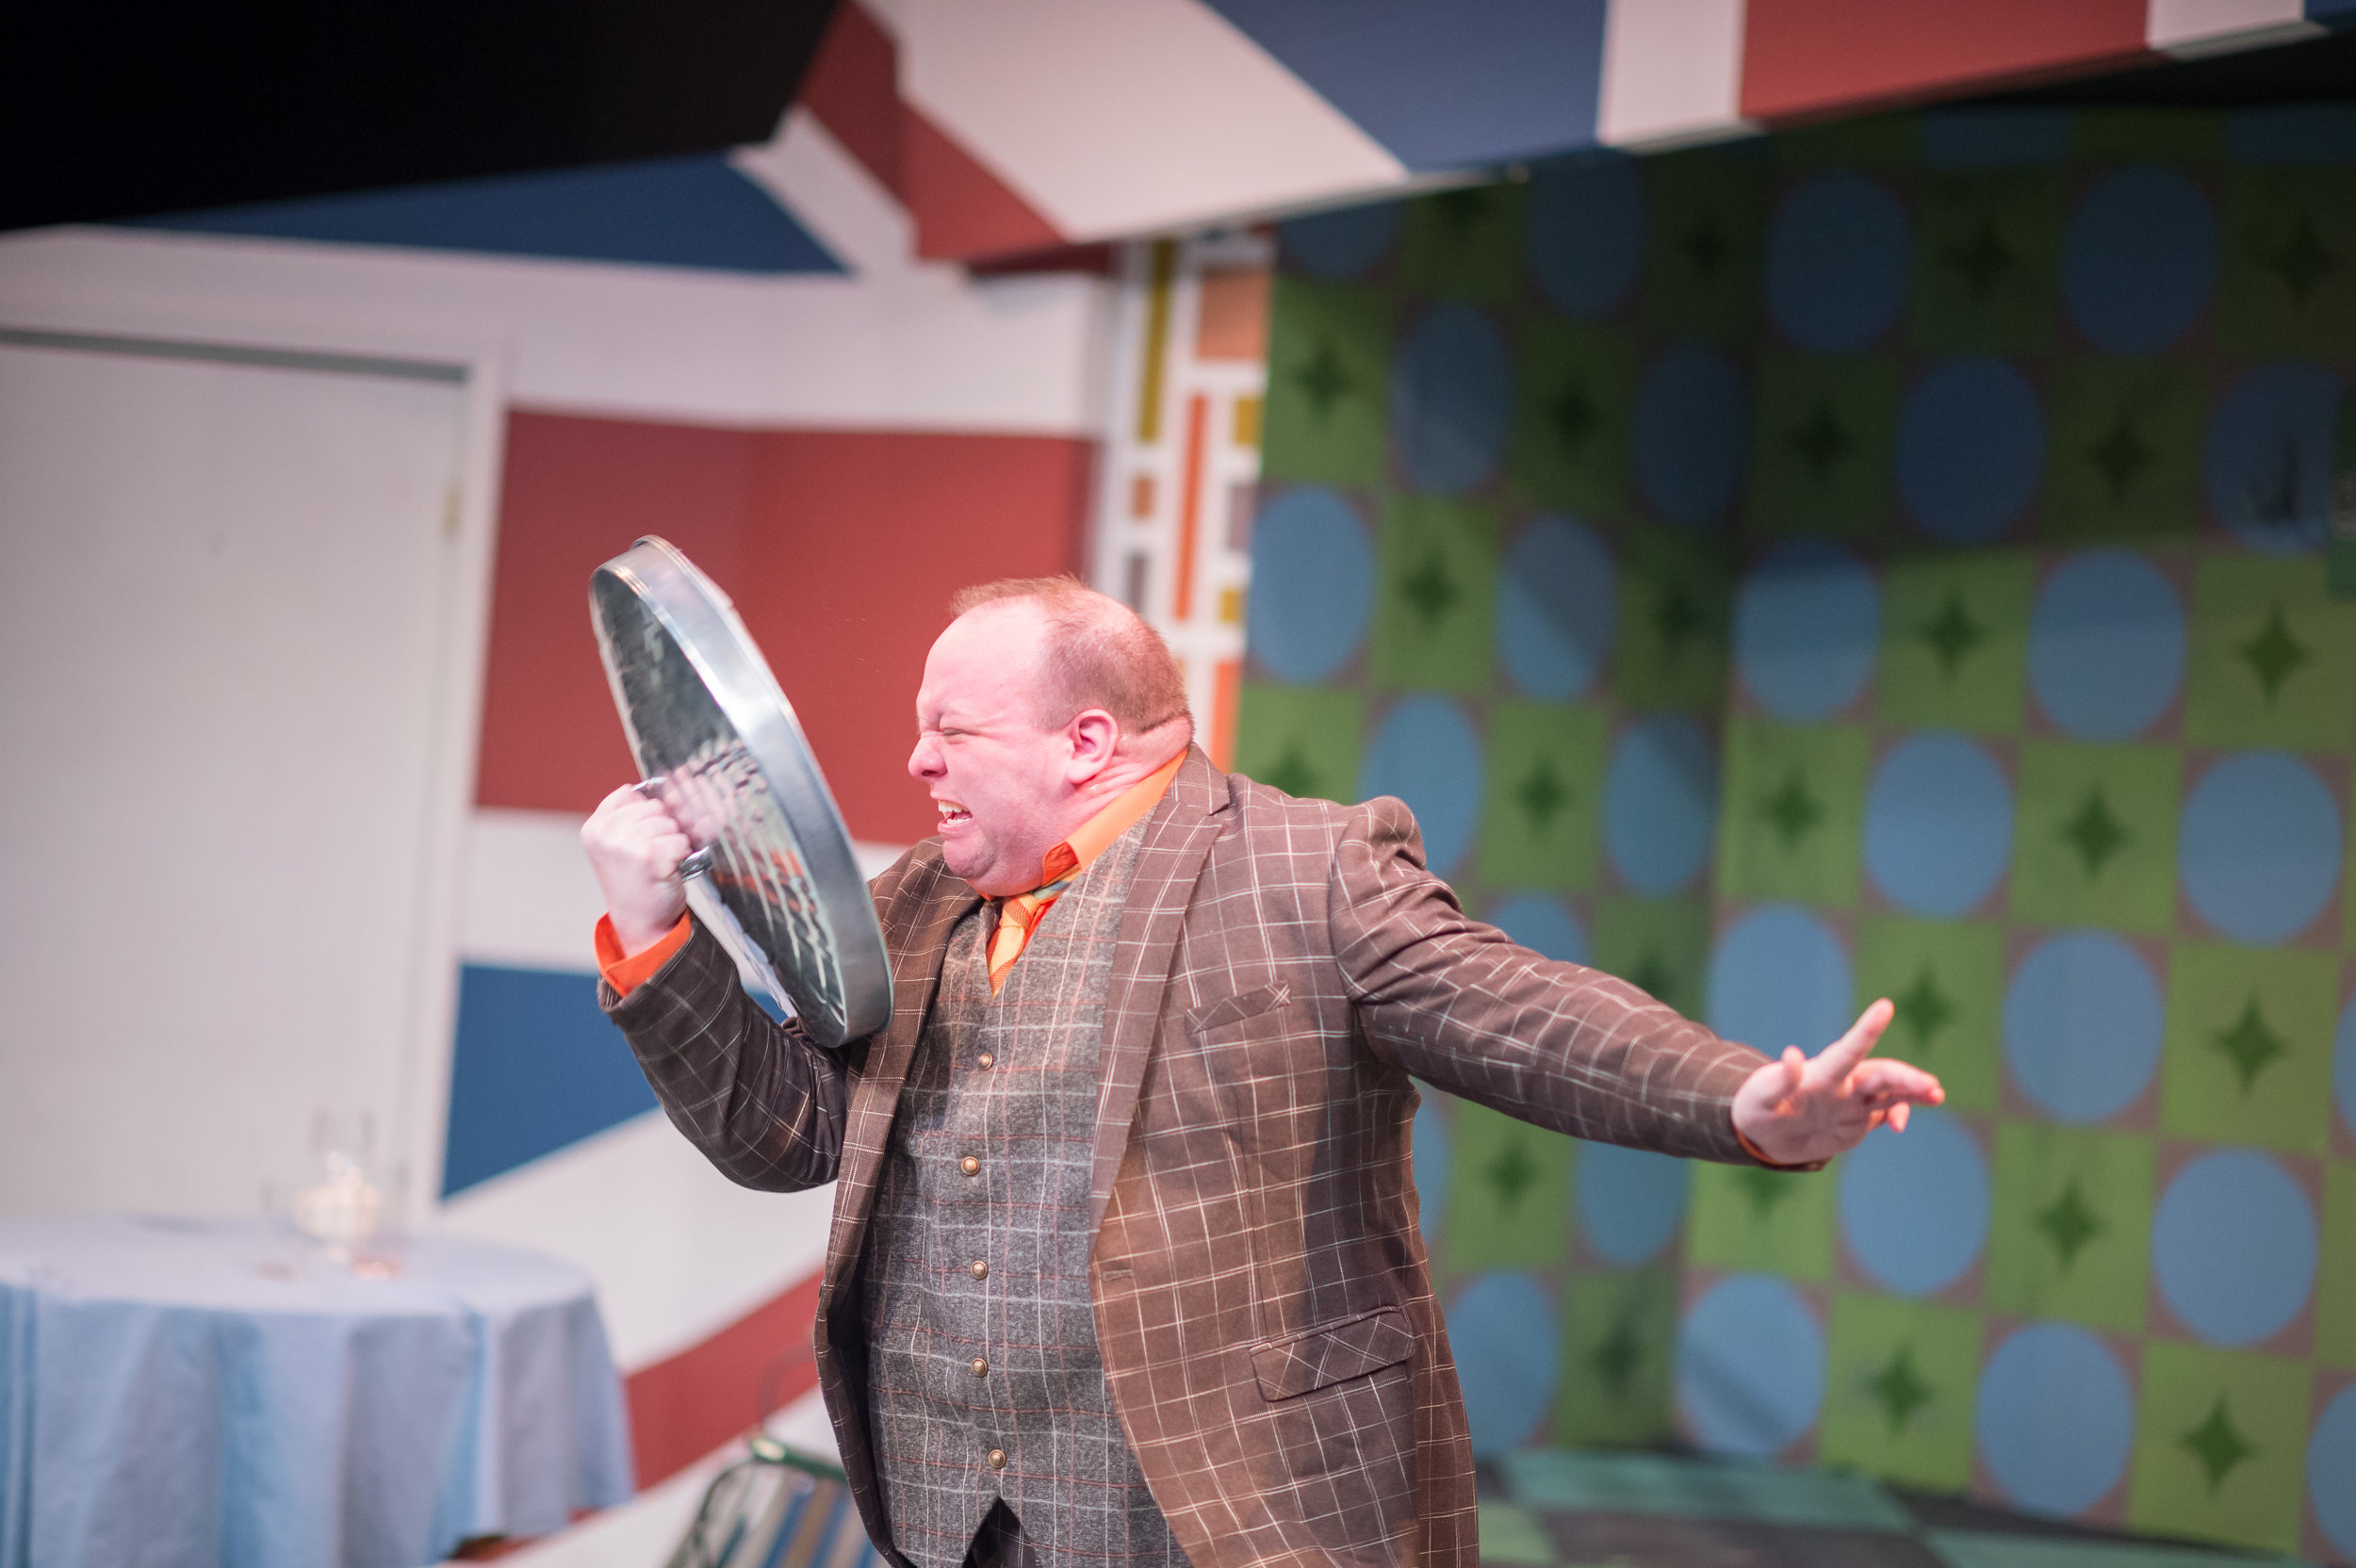 135-Yellow Tree Theatre-Photography-One Man Two Guvnors-Minneapolis-Minnesota photographer-April 11, 2017-www.jcoxphotography.com.jpg